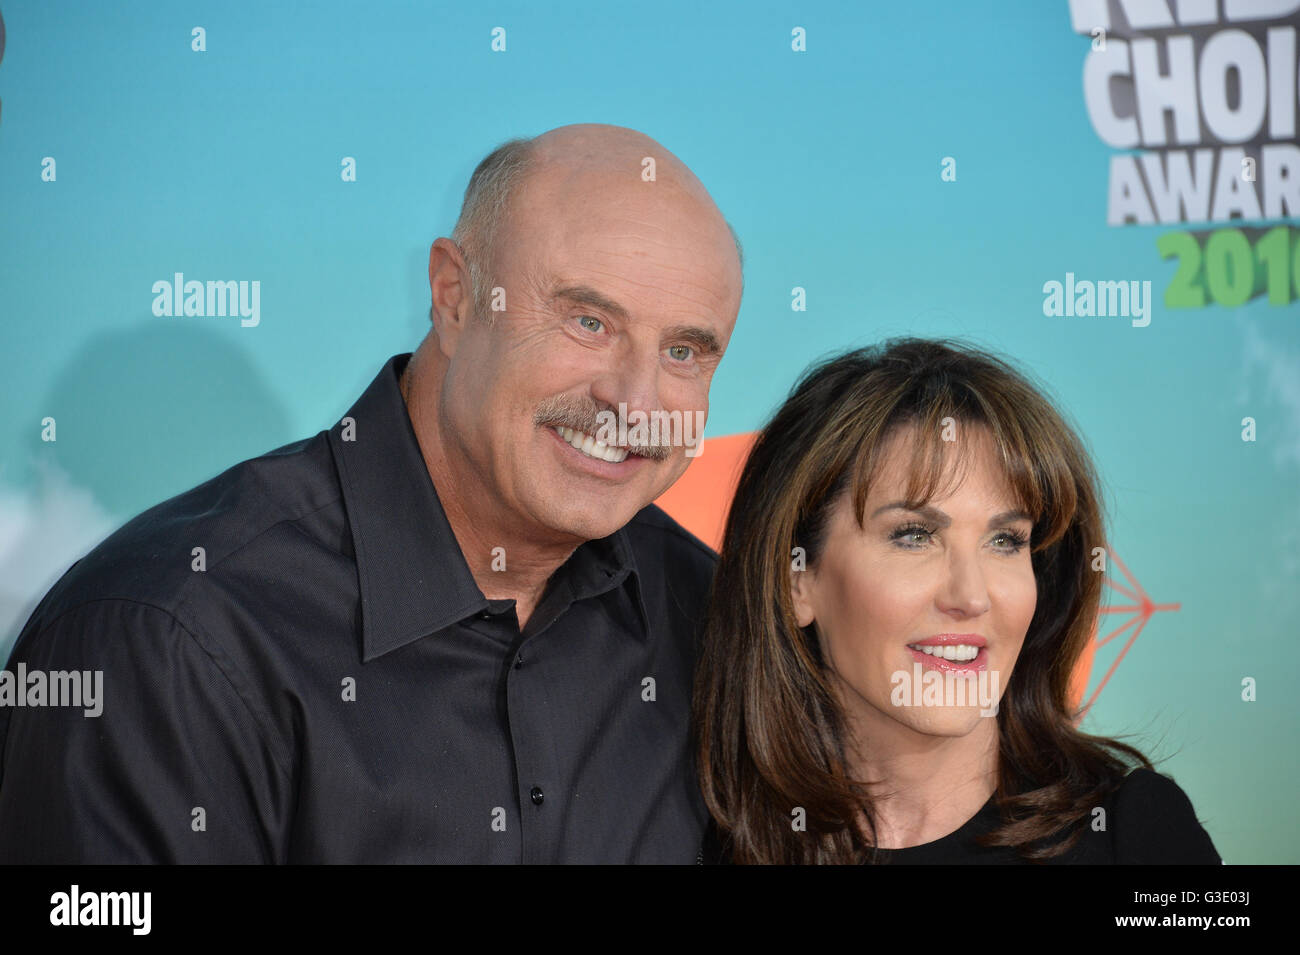 LOS ANGELES, CA - MARCH 12, 2016: Dr  Phil McGraw & wife